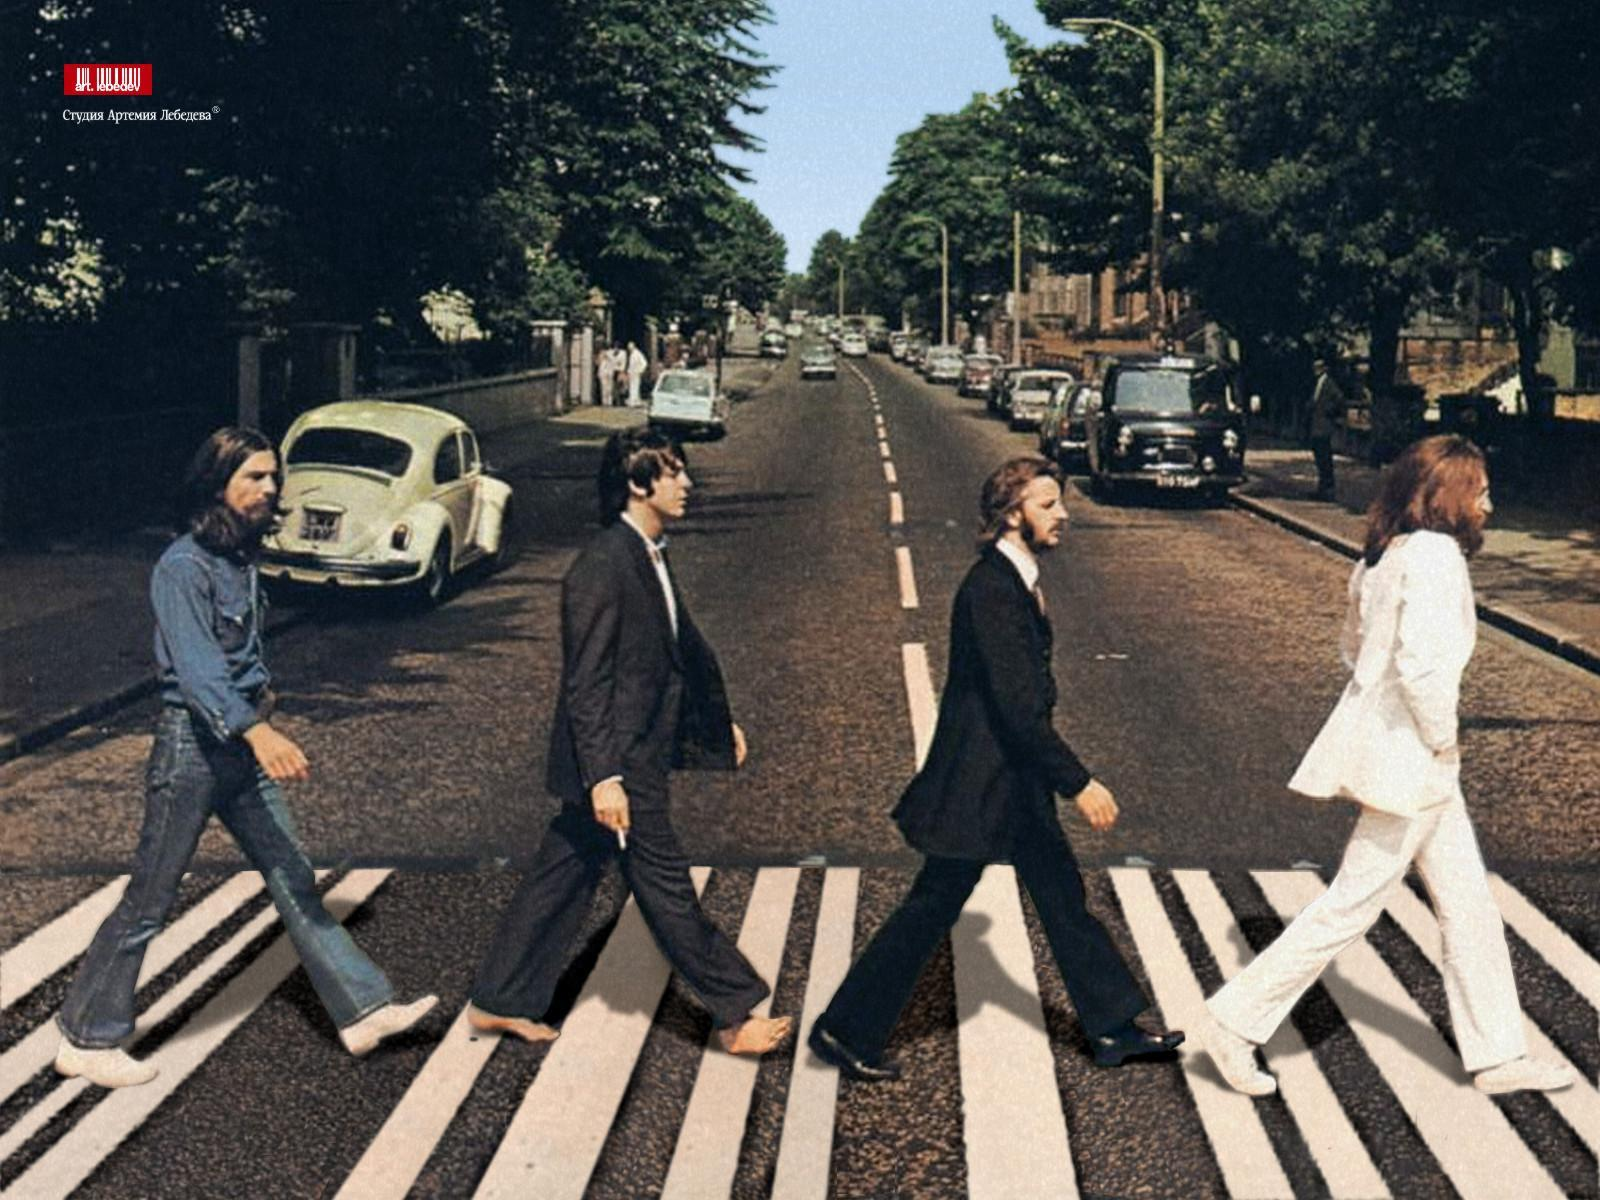 Where were the Beatles most famous?